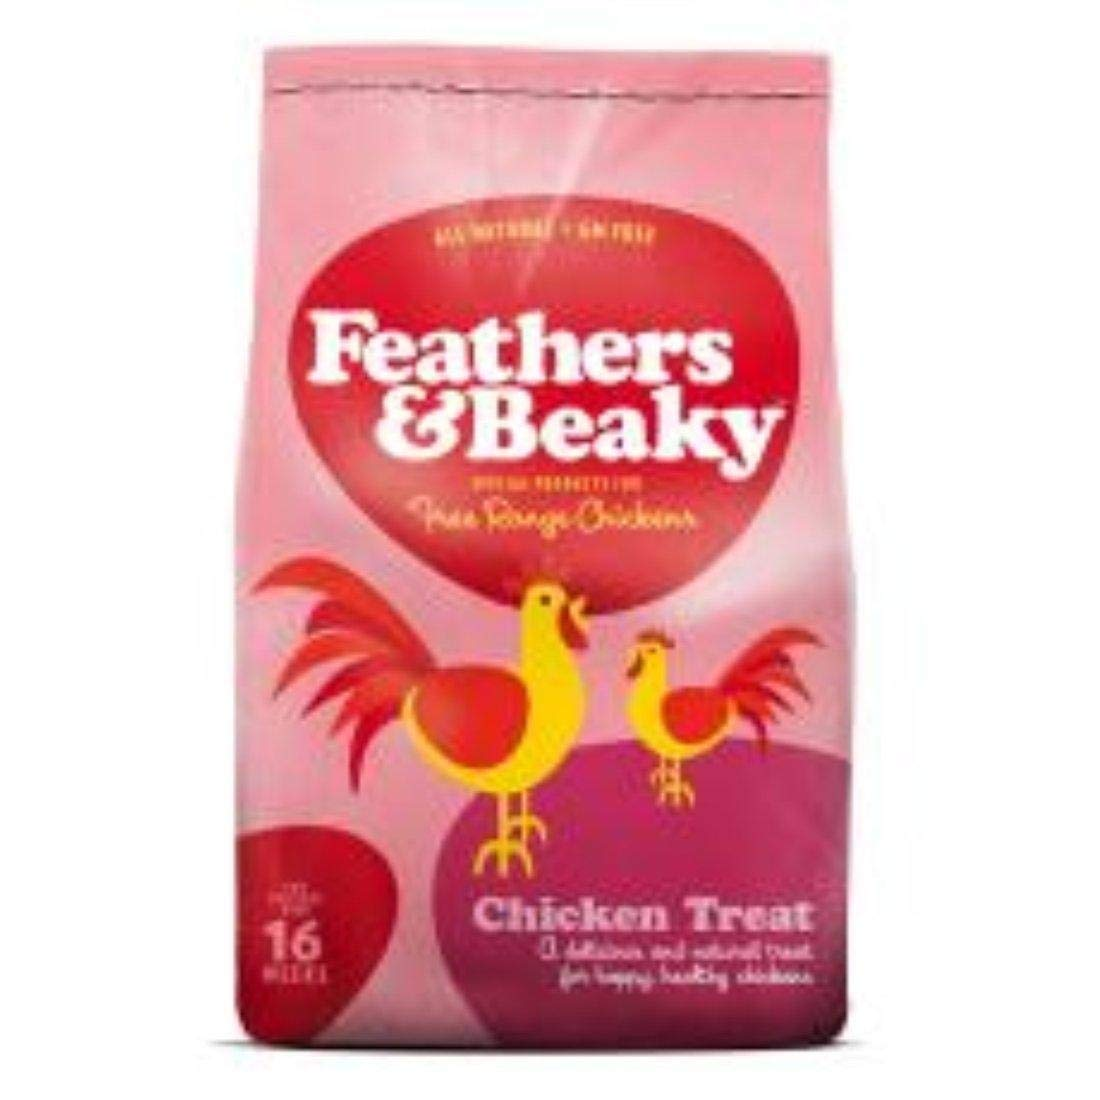 Spikes Feathers & Beaky Free Range Feed Chicken Treat 5kg by Spikes